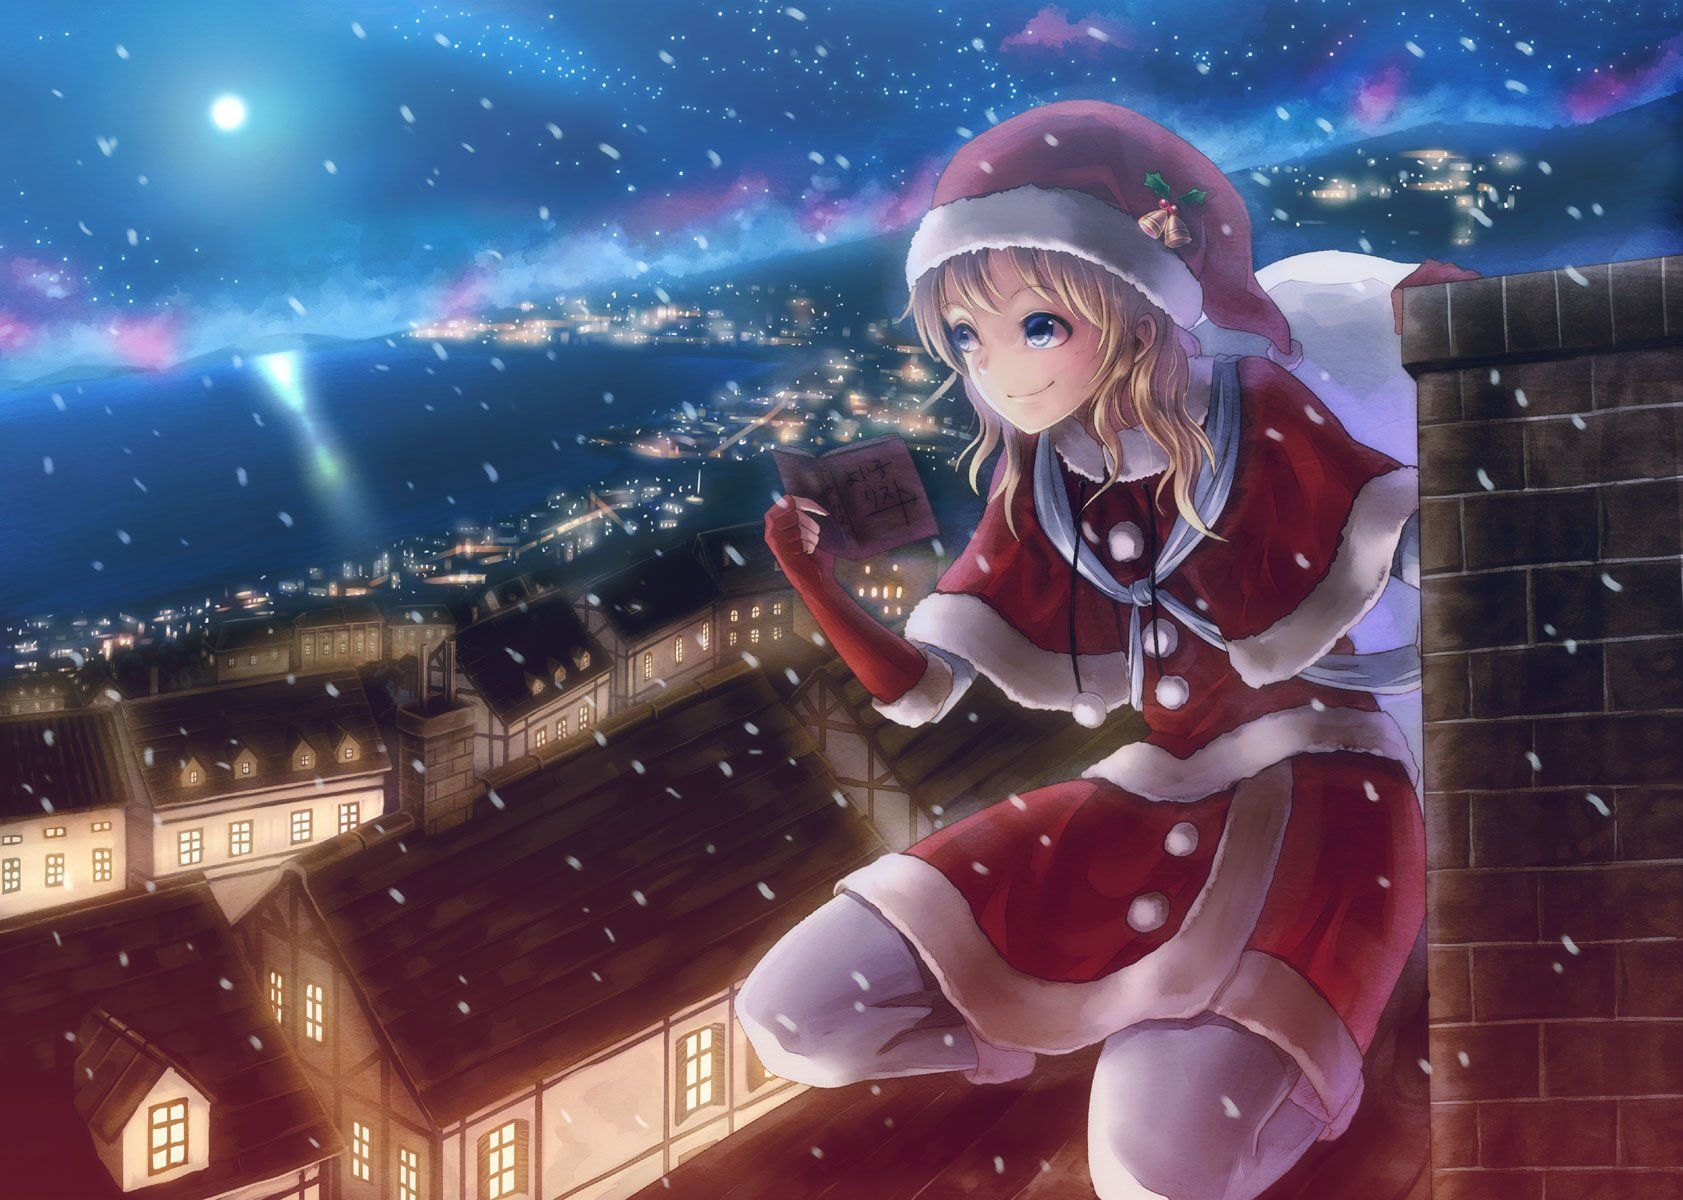 Anime Girls Christmas Wallpaper HD 4k